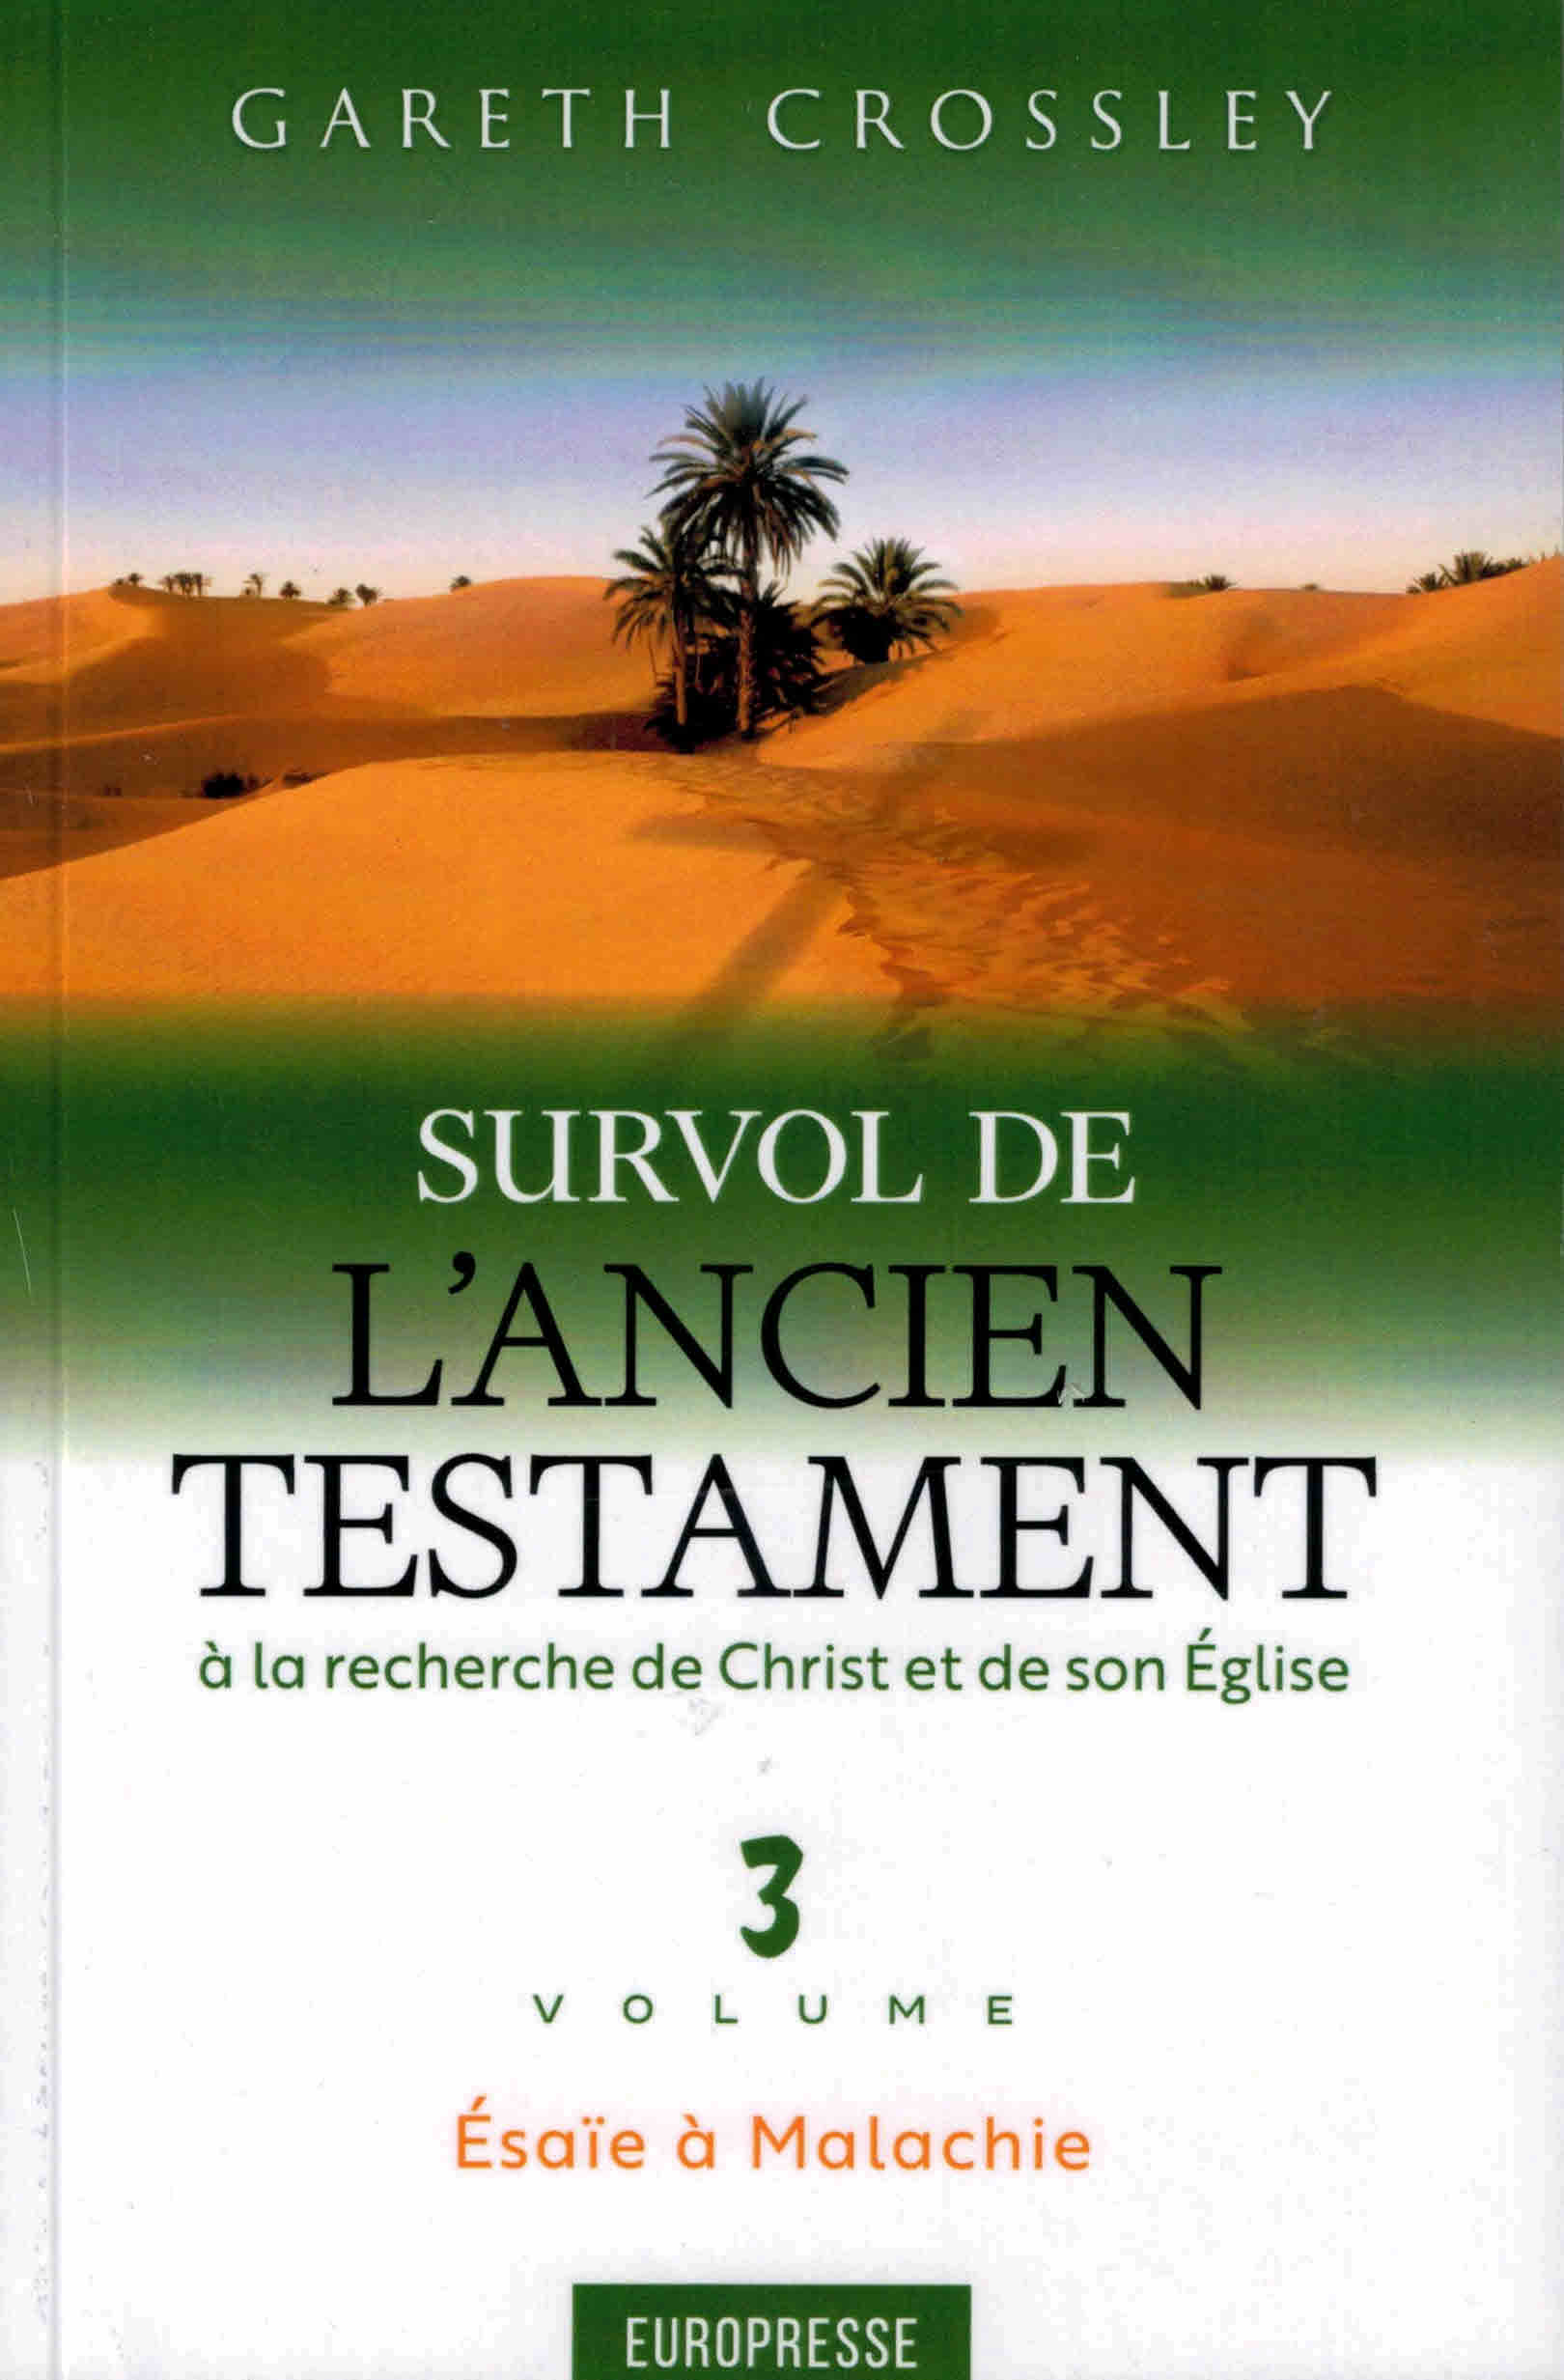 Survol de l'Ancien Testament volume 3